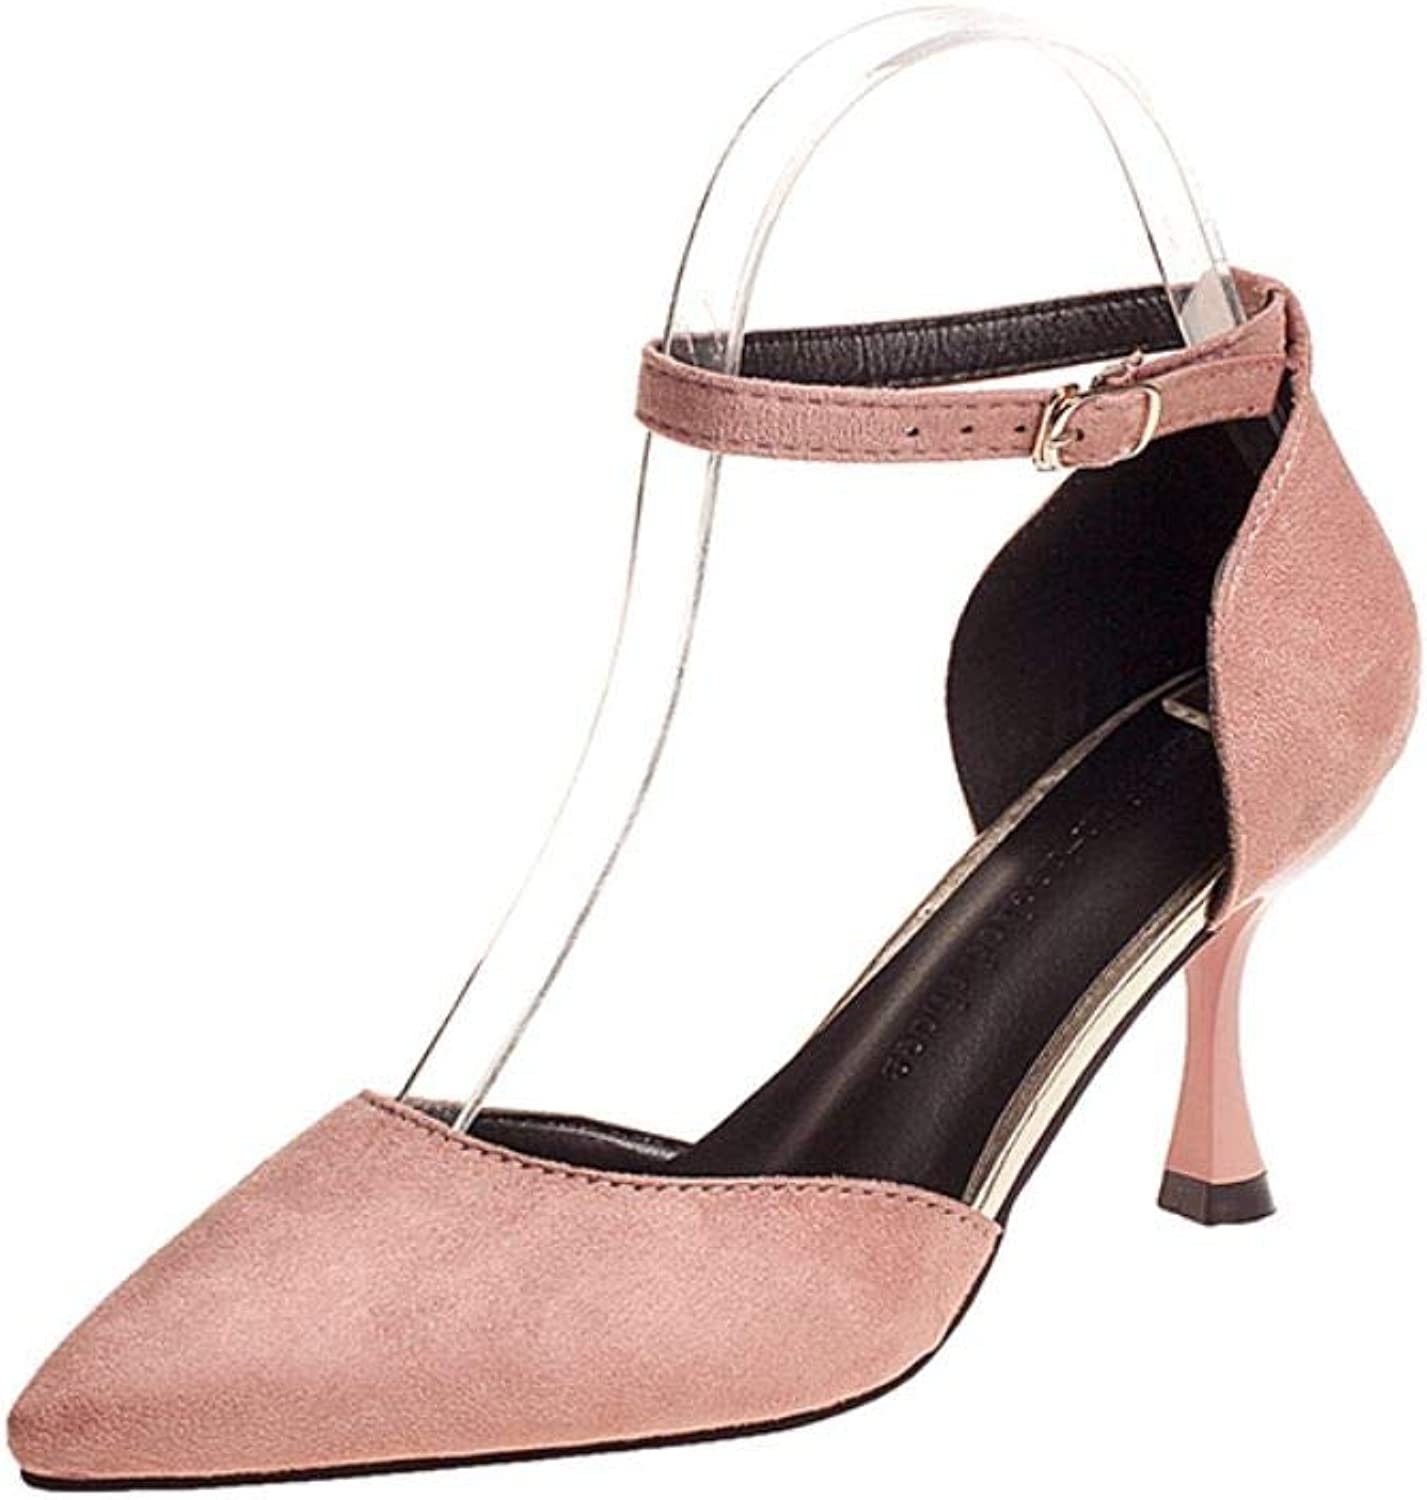 Sexyliliforu Fine with Pointed Simple high Heels 2019 Spring and Summer European and American Fashion Single shoes Wild New Women's shoes